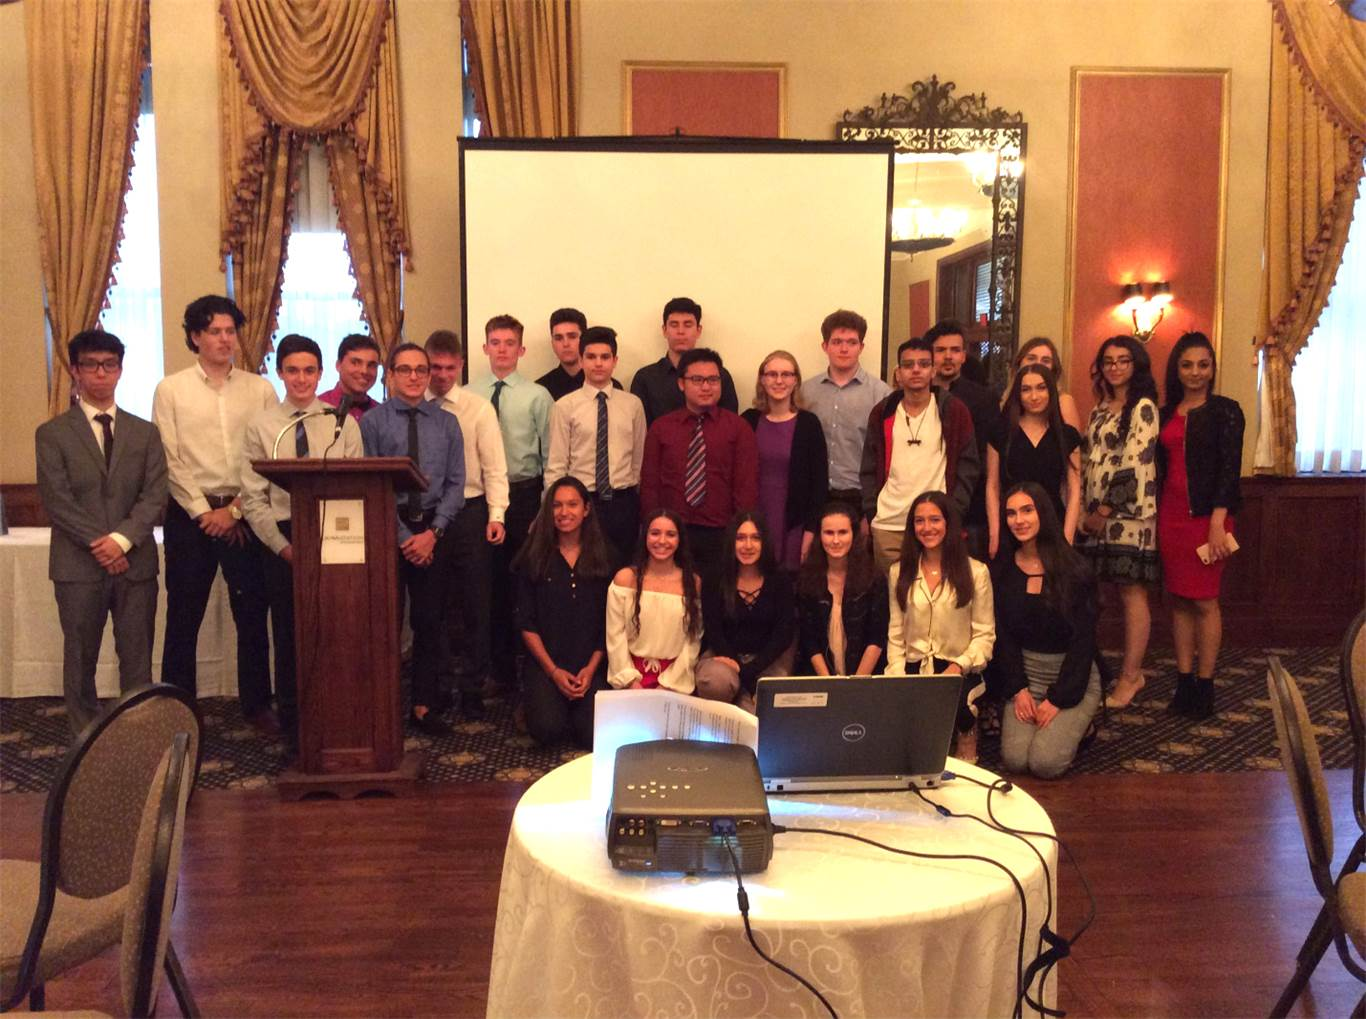 Top twenty students from both boards were invited to attend an awards dinner.